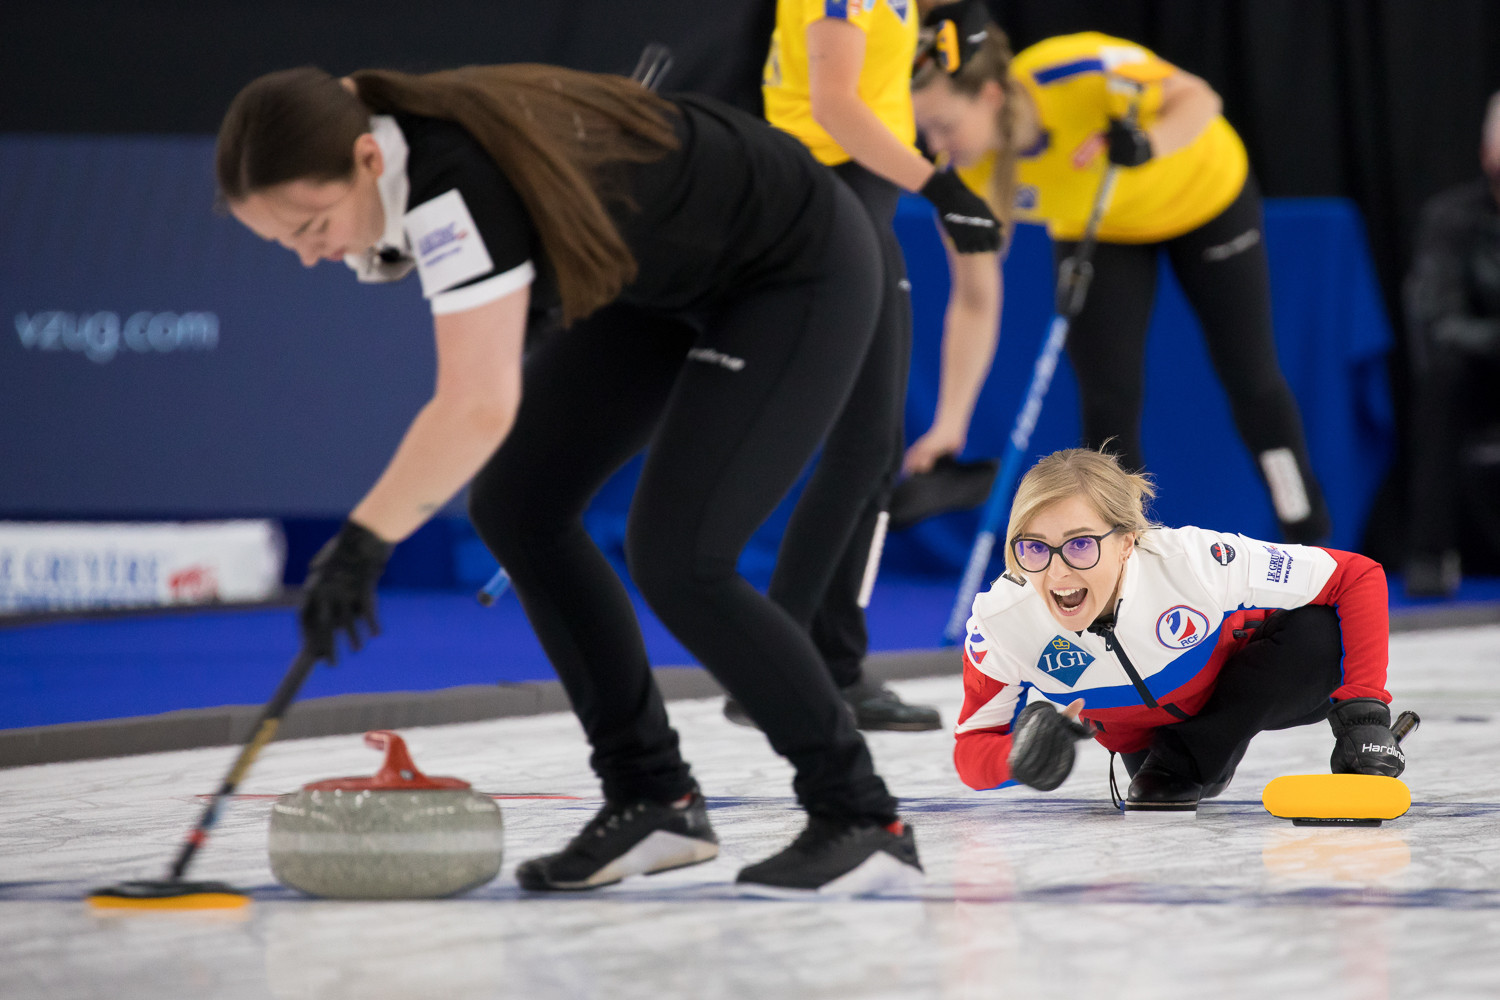 Switzerland to face RCF in final of World Women's Curling Championship